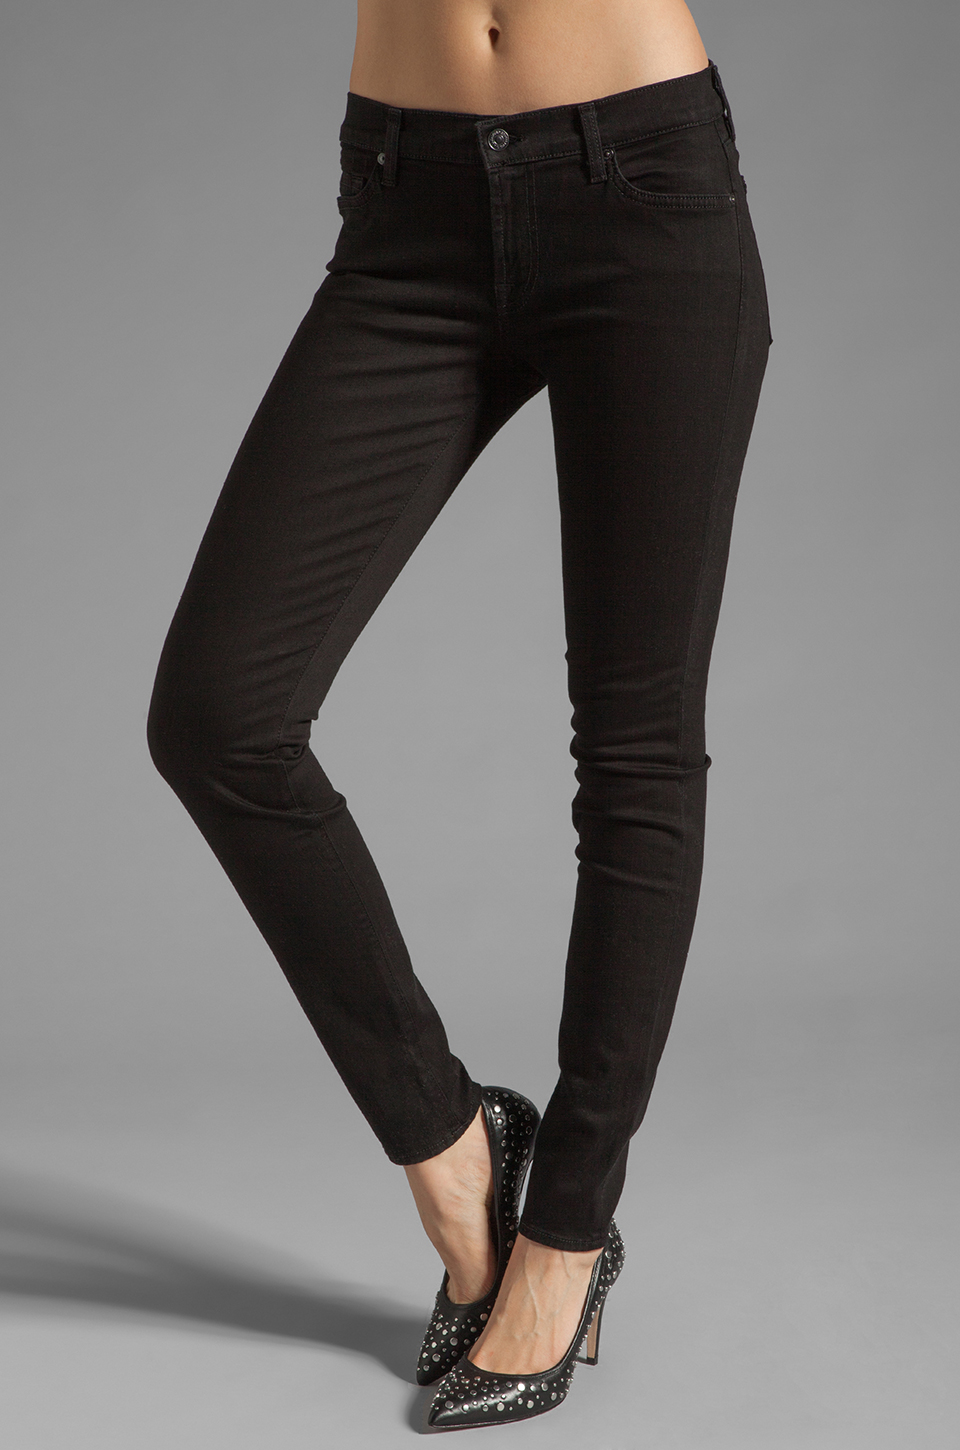 7 For All Mankind The Skinny in Clean Black